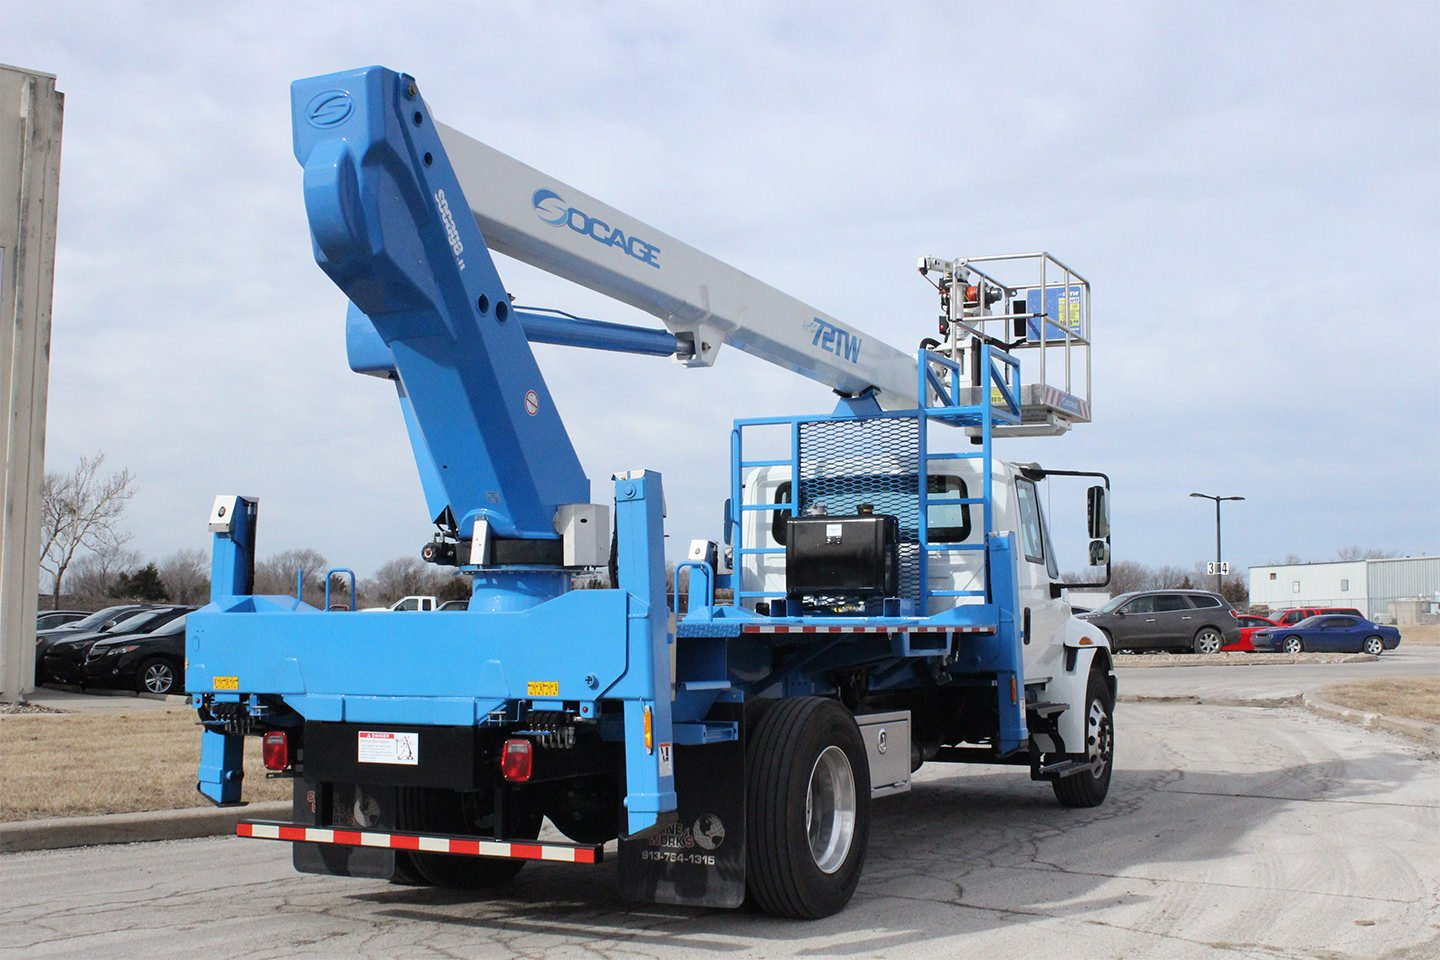 New Socage 72TW aerial lift for sale on International 4300SBA chassis Rear